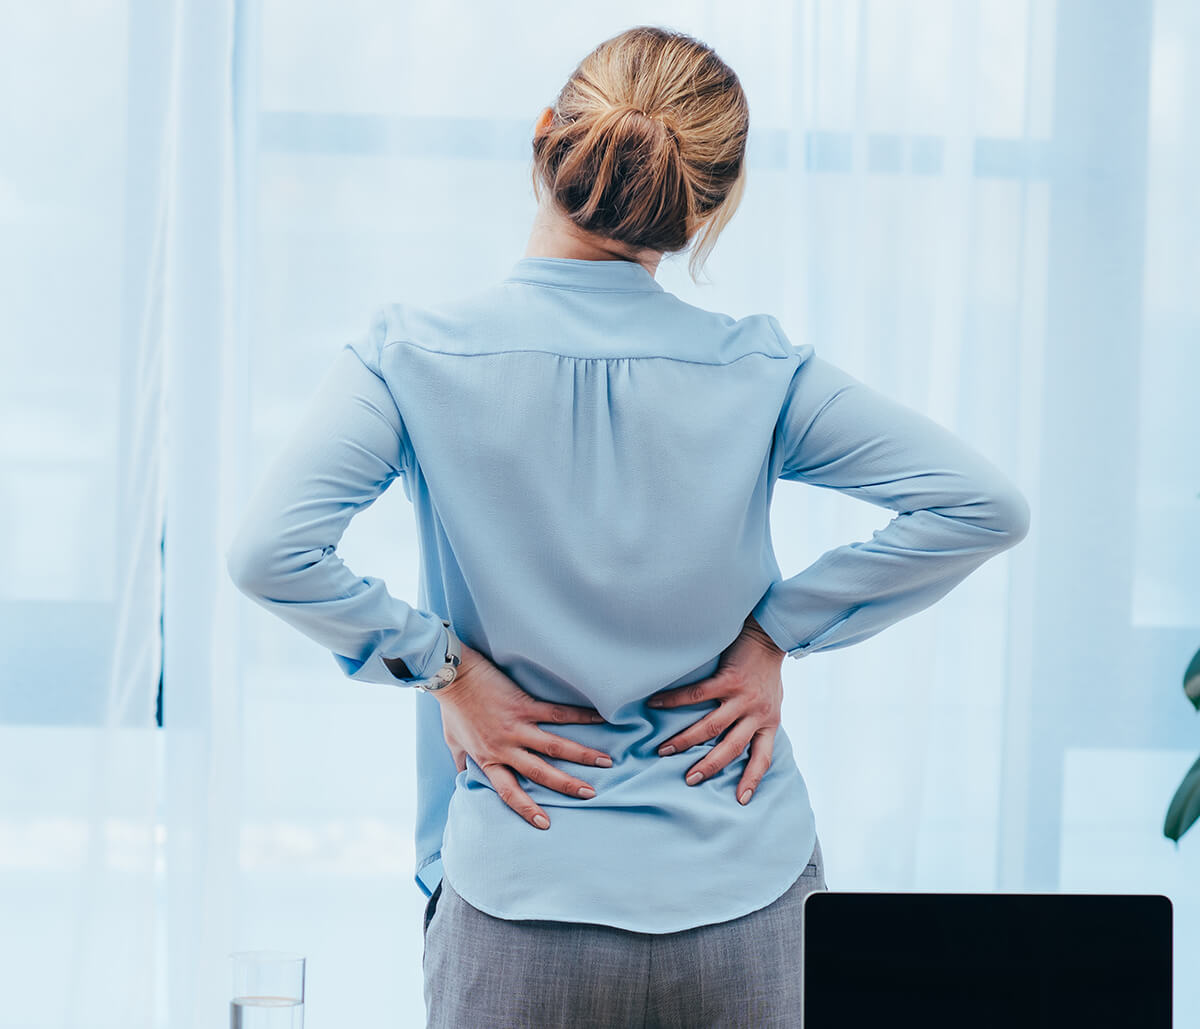 Get back your life with nonsurgical nerve block injection therapy for back pain in Encinitas, CA